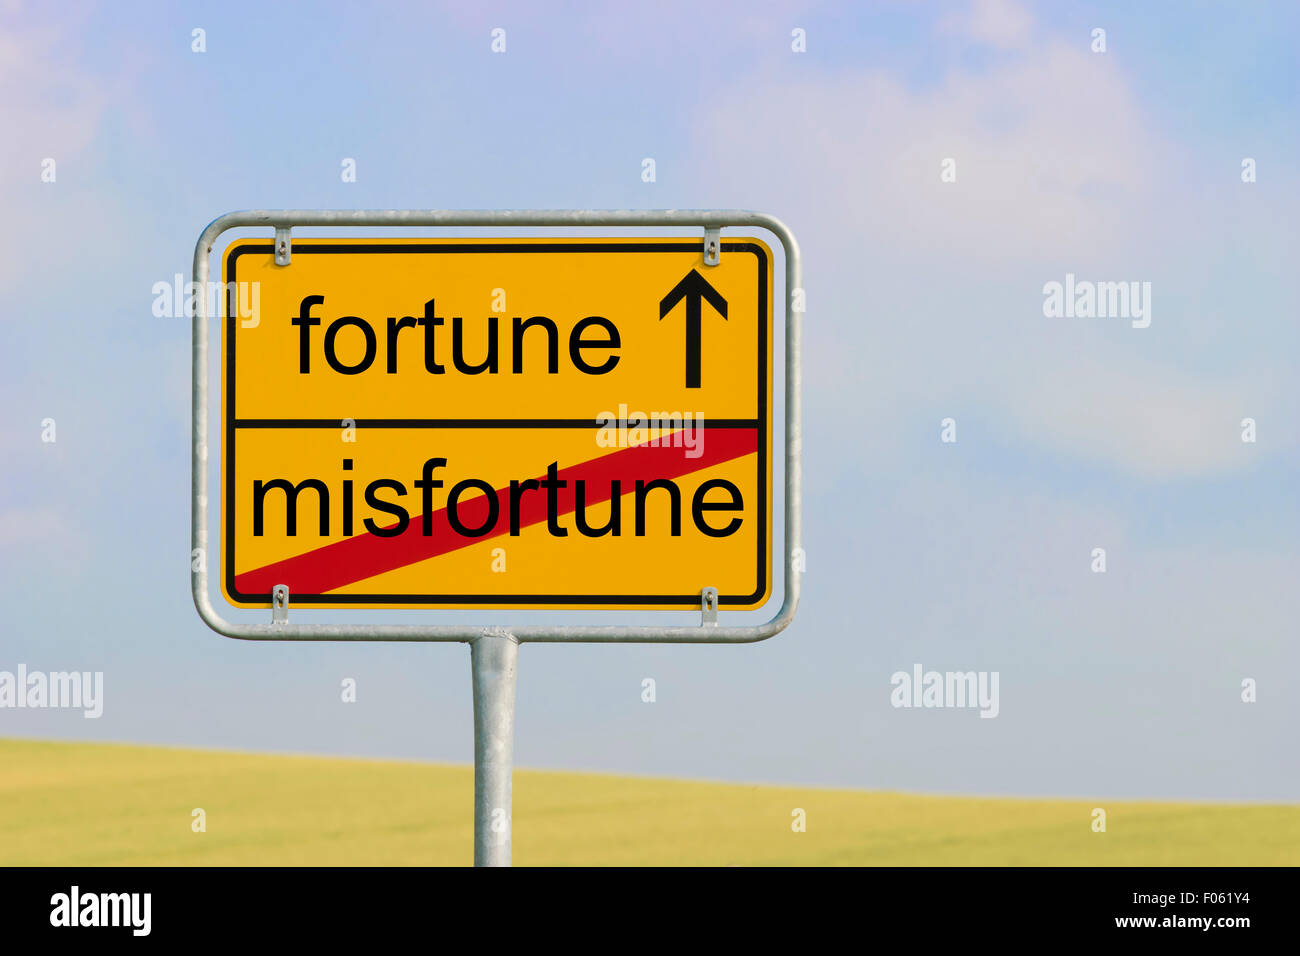 Yellow town sign with text 'misfortune fortune' - Stock Image